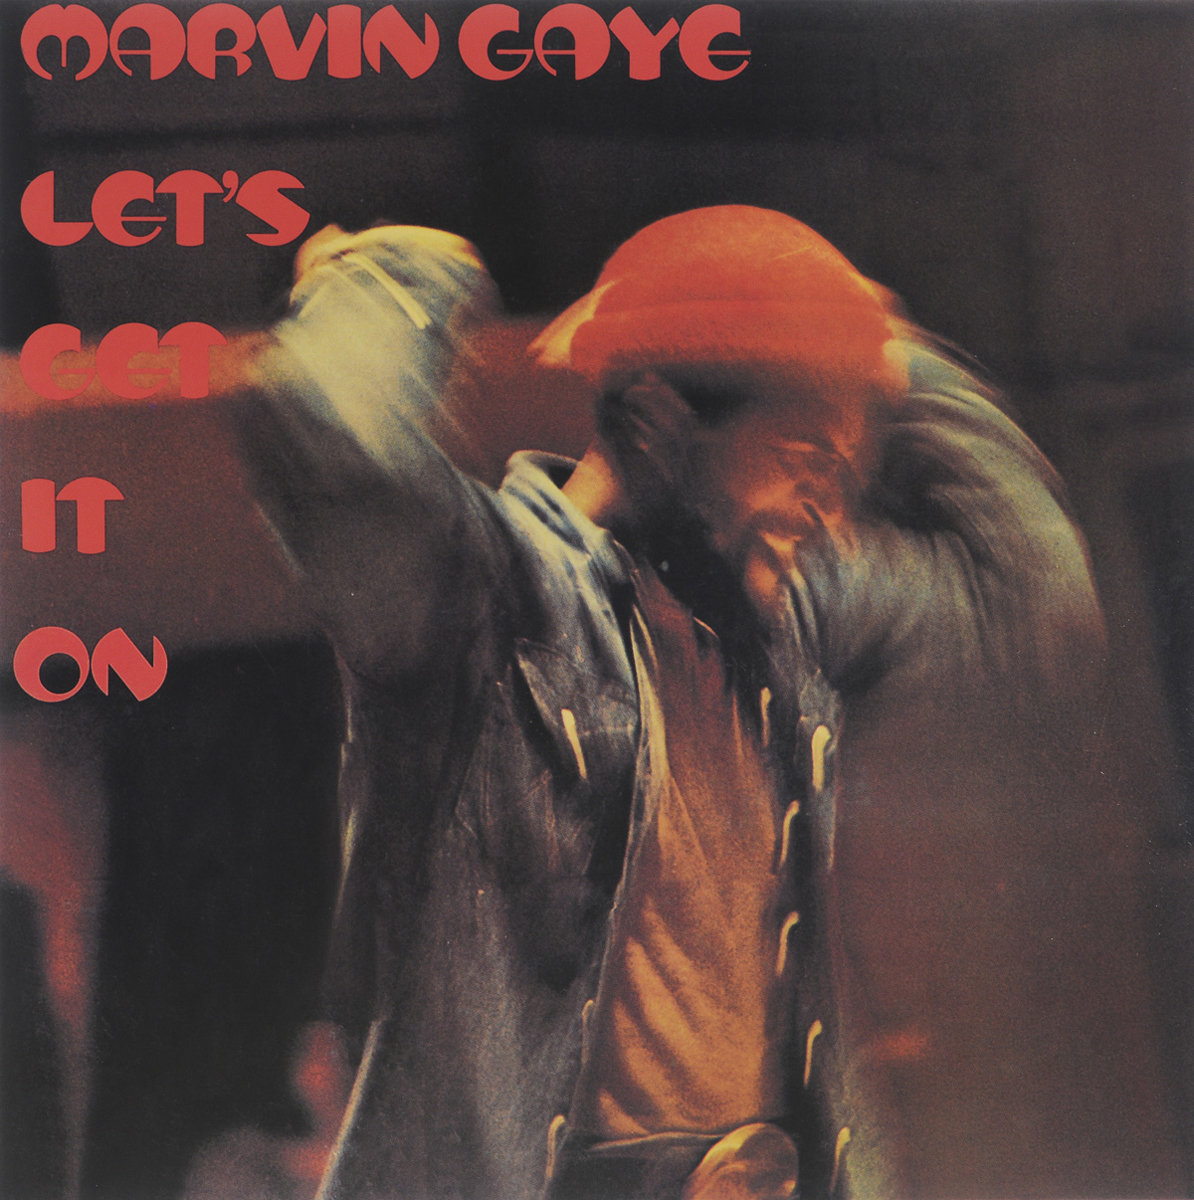 Марвин Гэй Marvin Gaye. Let's Get It On (LP) цены